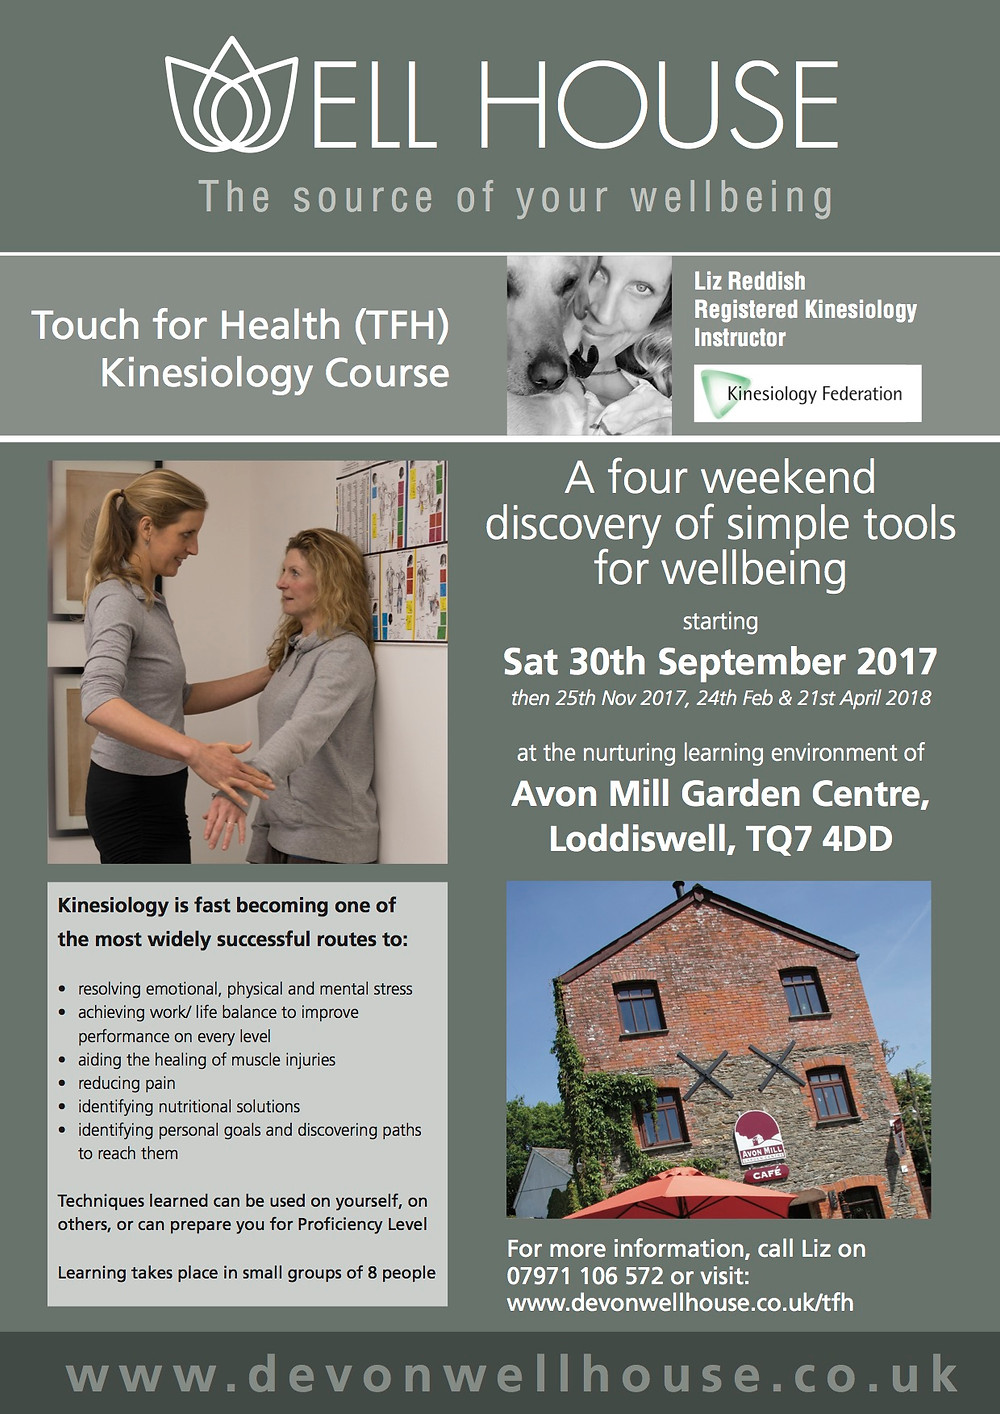 A four weekend discovery of simple tools for wellbeing starting Sat 30th September 2017 then 25th Nov 2017, 24th Feb & 21st April 2018 at the nurturing learning environment of Avon Mill Garden Centre, Loddiswell, TQ7 4DD.